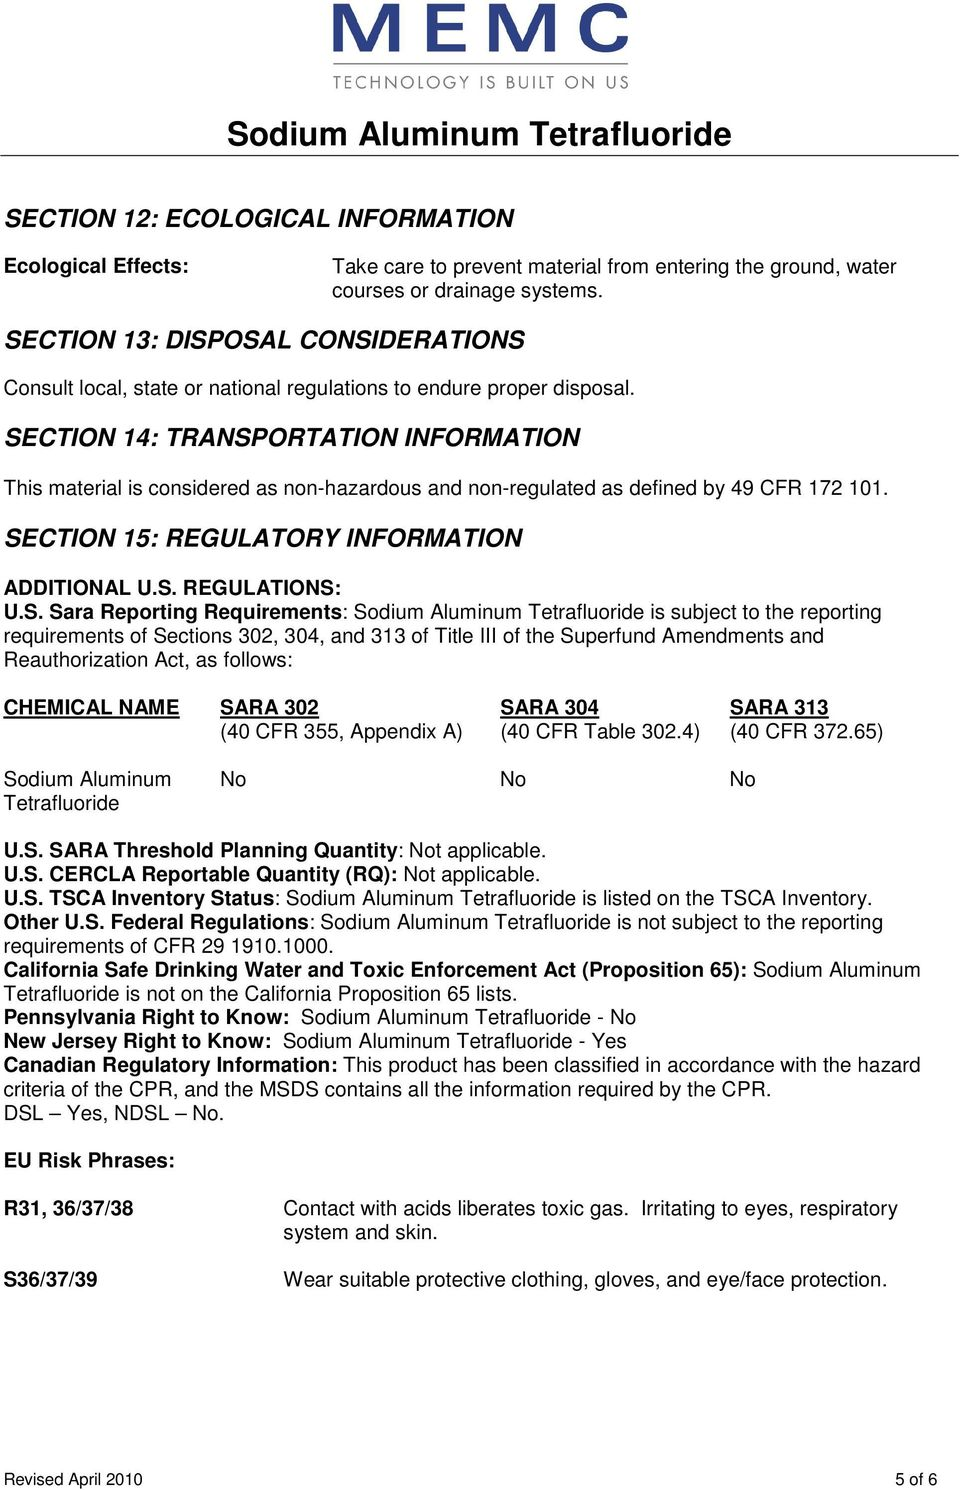 SECTION 14: TRANSPORTATION INFORMATION This material is considered as non-hazardous and non-regulated as defined by 49 CFR 172 101. SECTION 15: REGULATORY INFORMATION ADDITIONAL U.S. REGULATIONS: